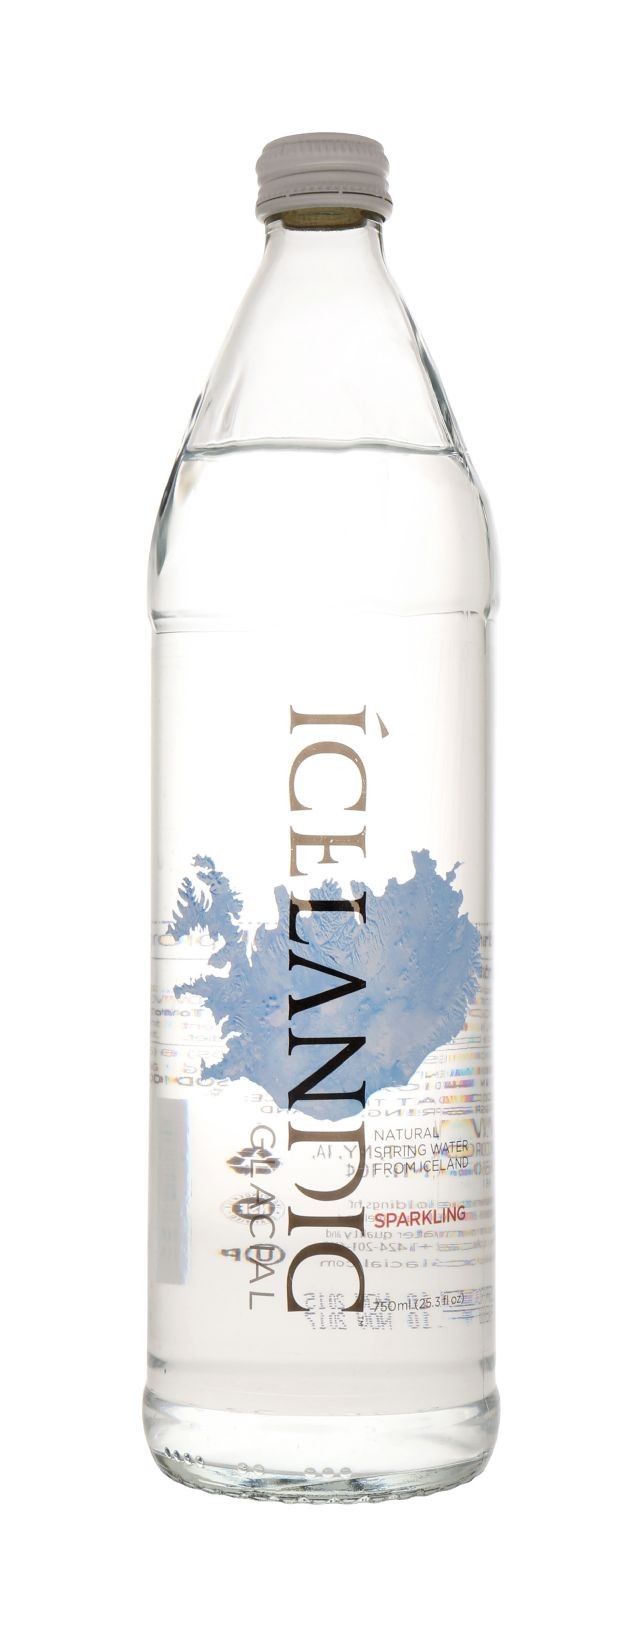 Icelandic Glacial Water: Icelandic Spark750